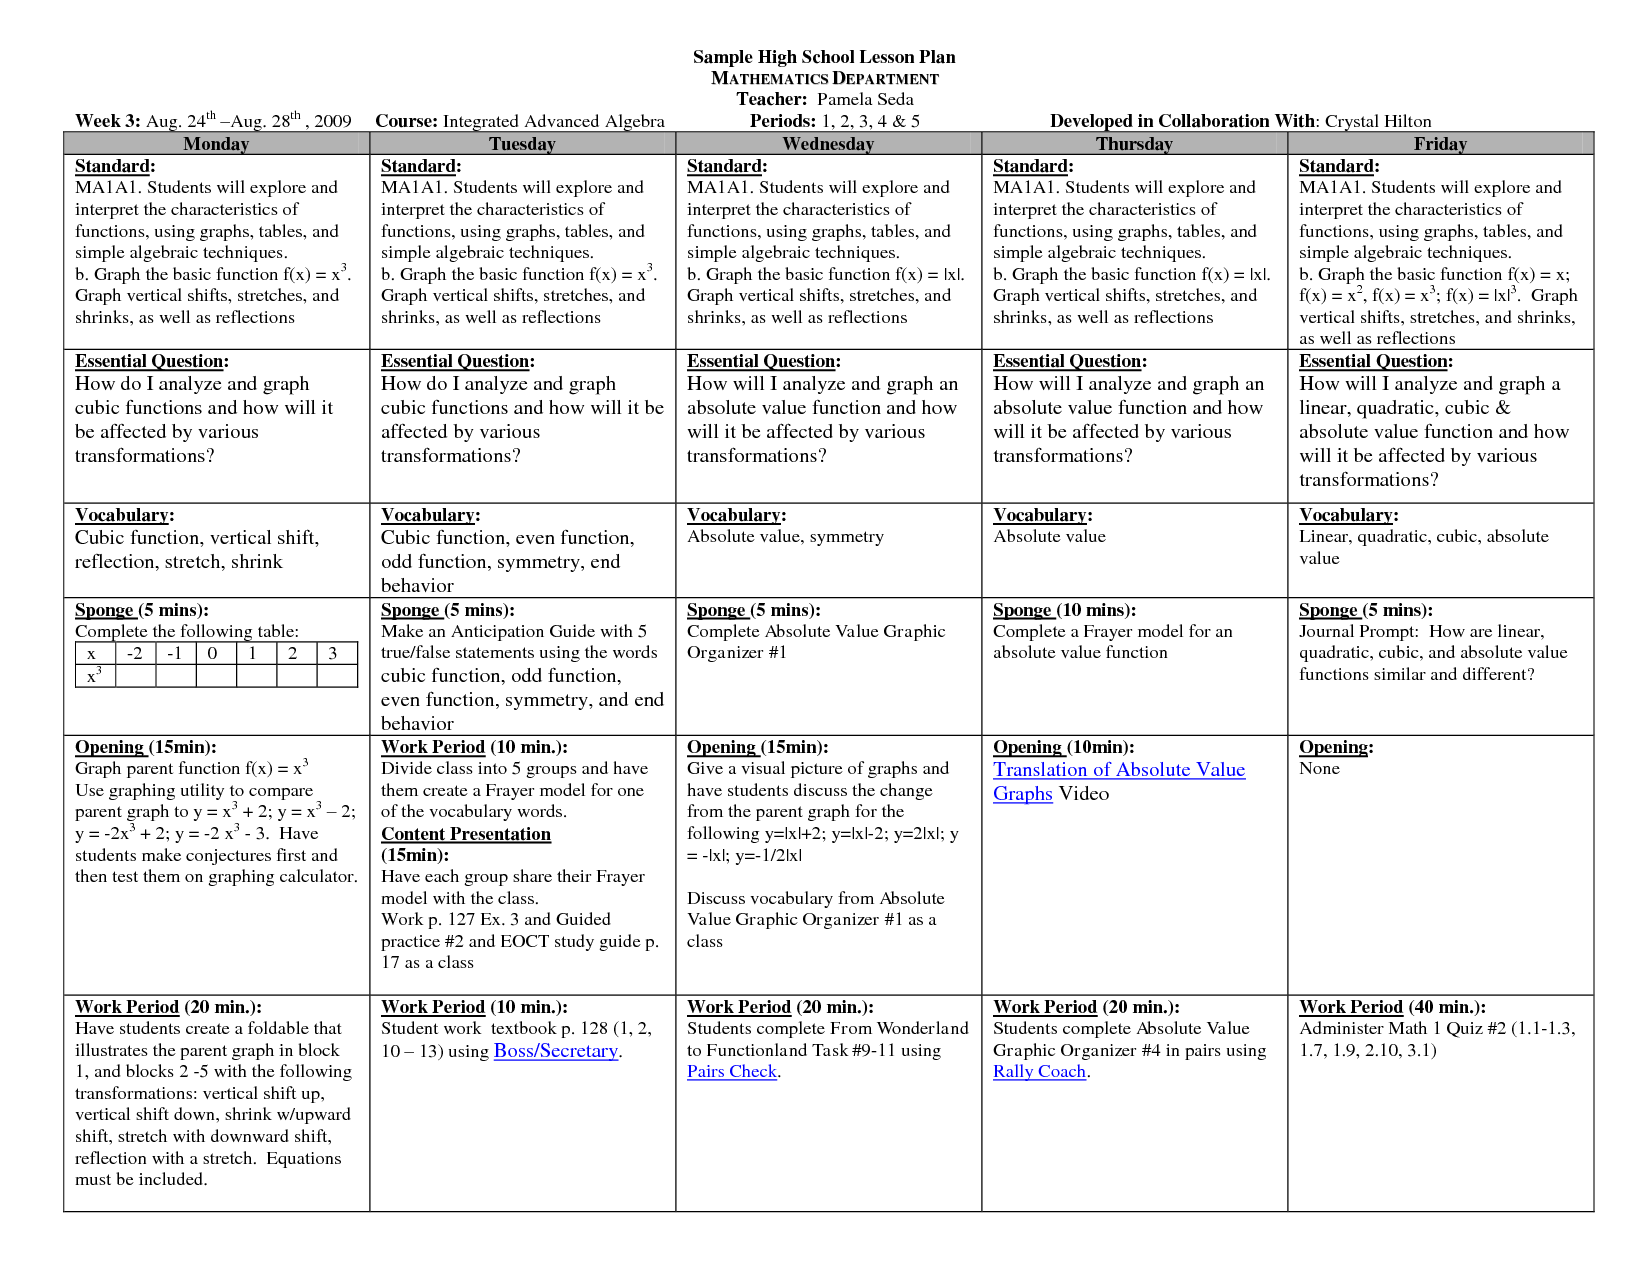 Math Lesson Plan Template High Schoolsample Hs Math Weekly Lesson Plan Ngrg  | Affordable Templates  Free Lesson Plan Format